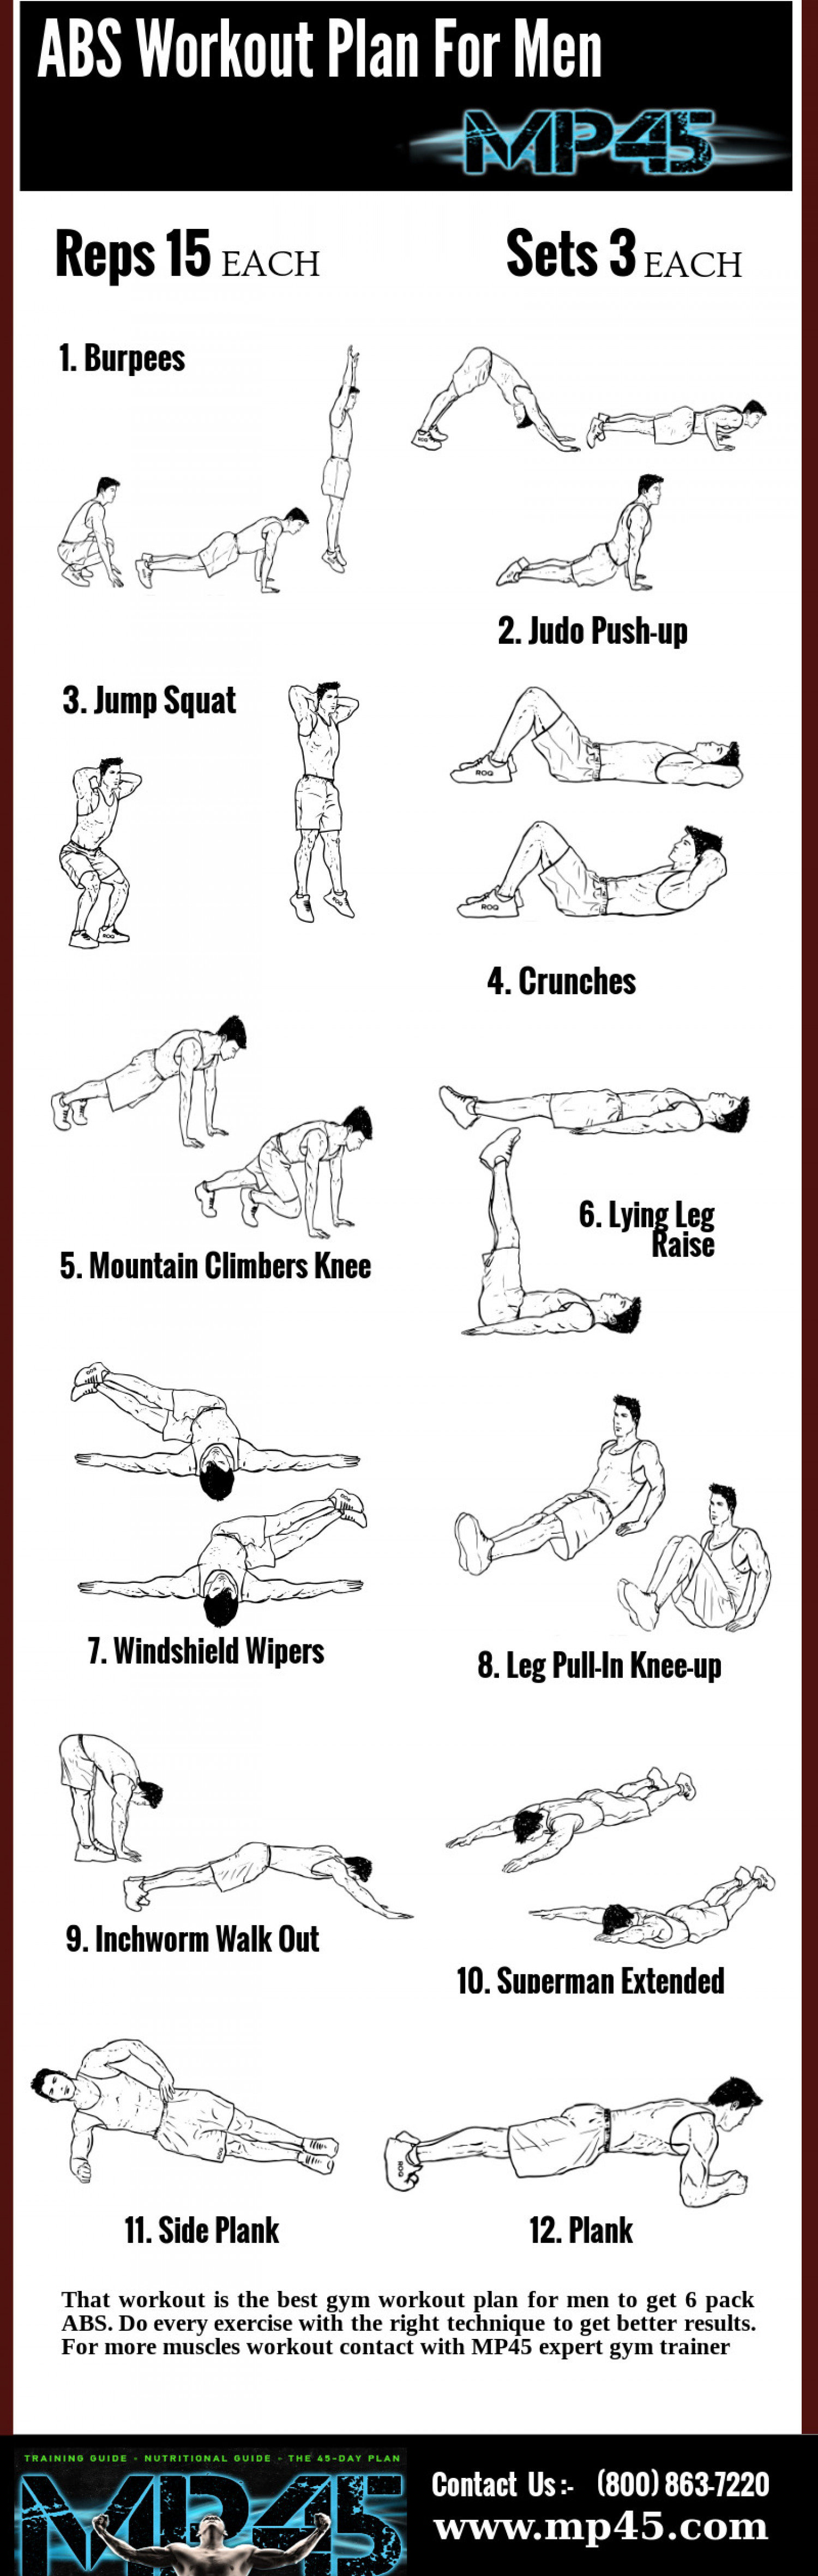 Abs Workouts For Men In Gym Infographic